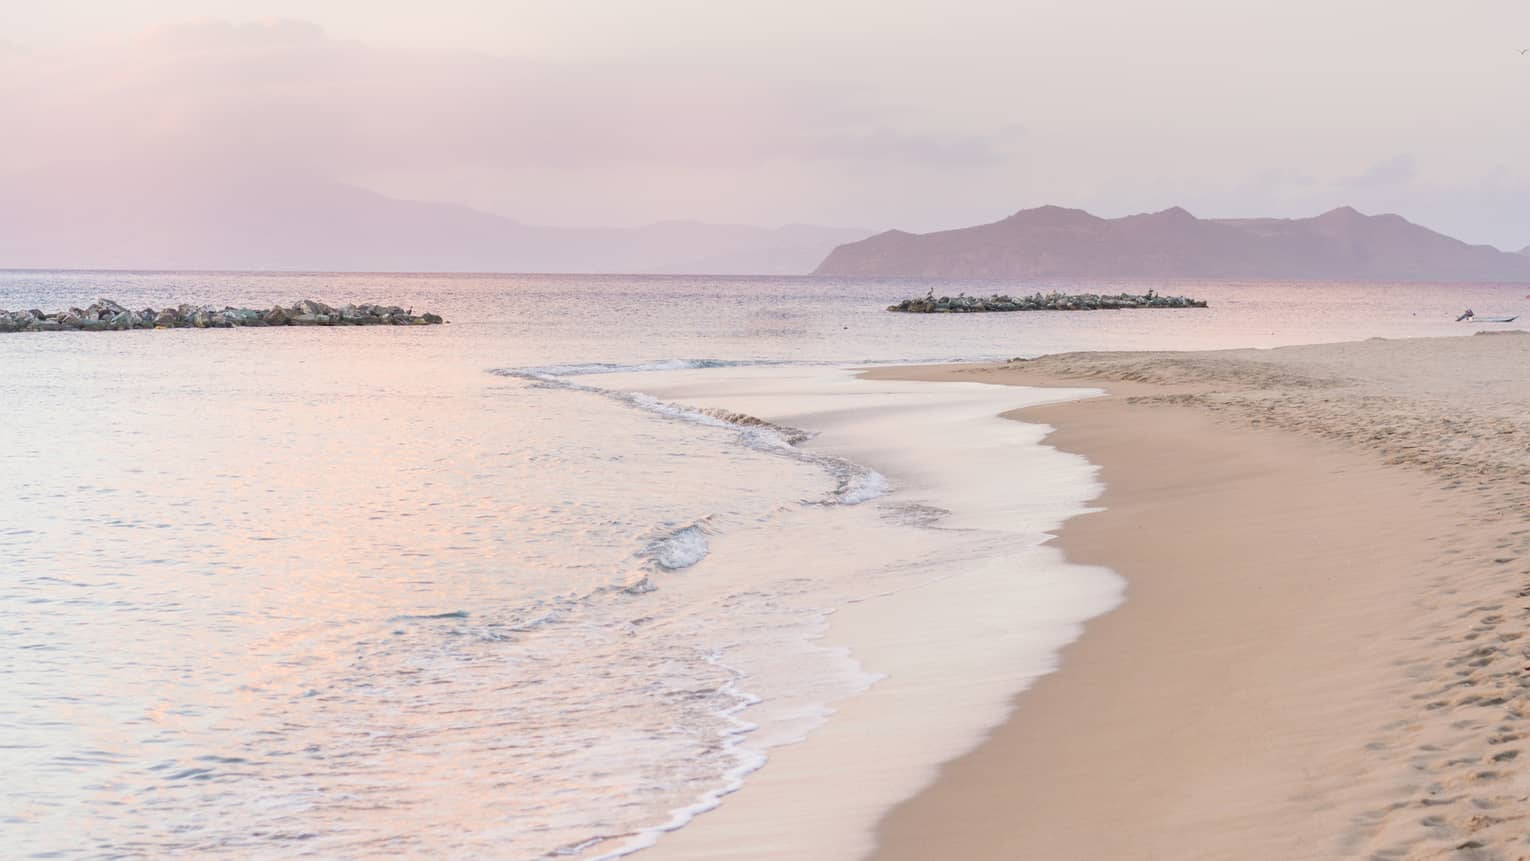 Calm tides on edge of white sand beach, pink sunset reflected on water